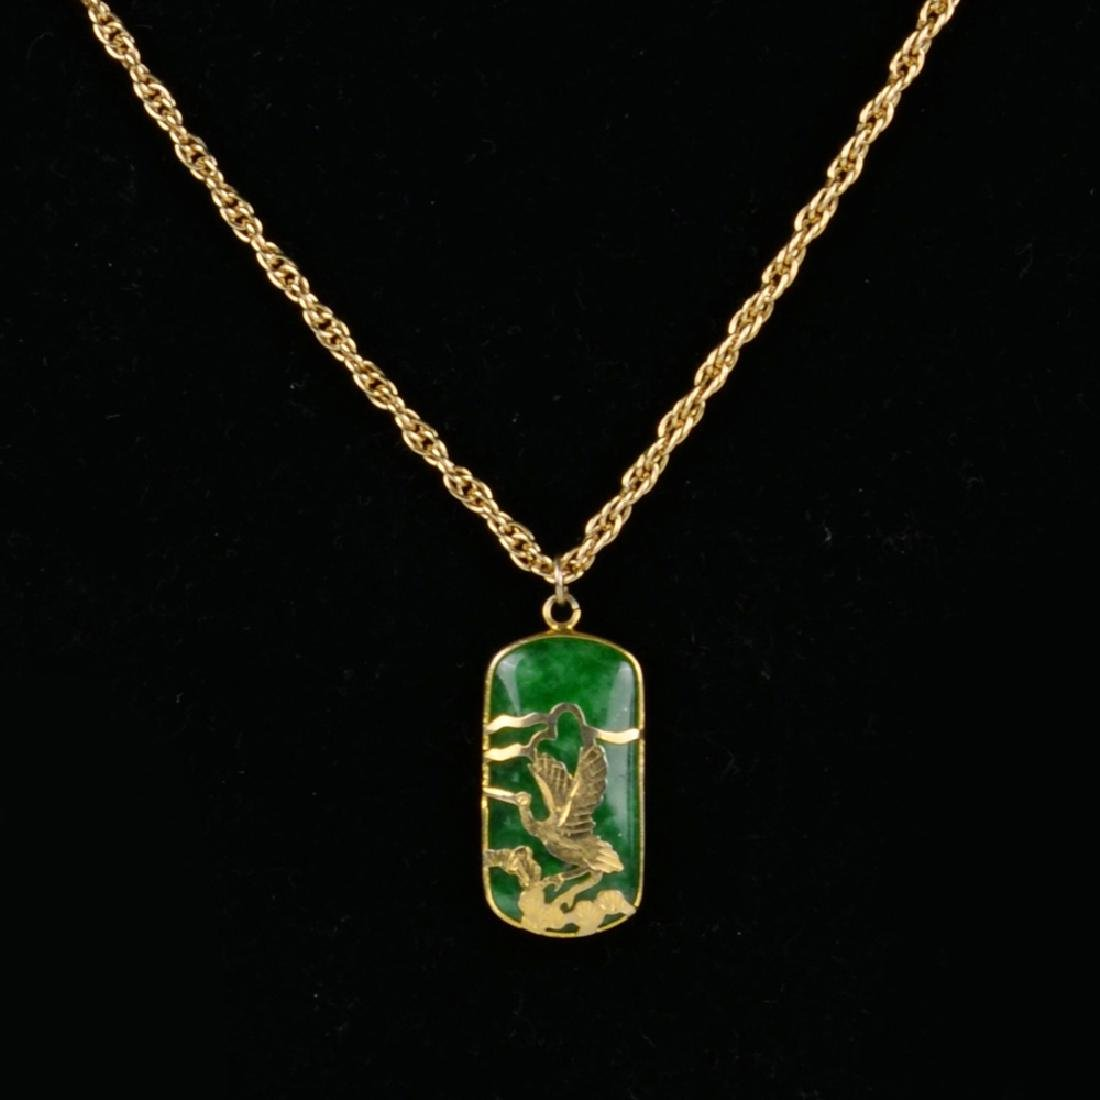 CHINESE JADE PENDANT WITH CHAIN